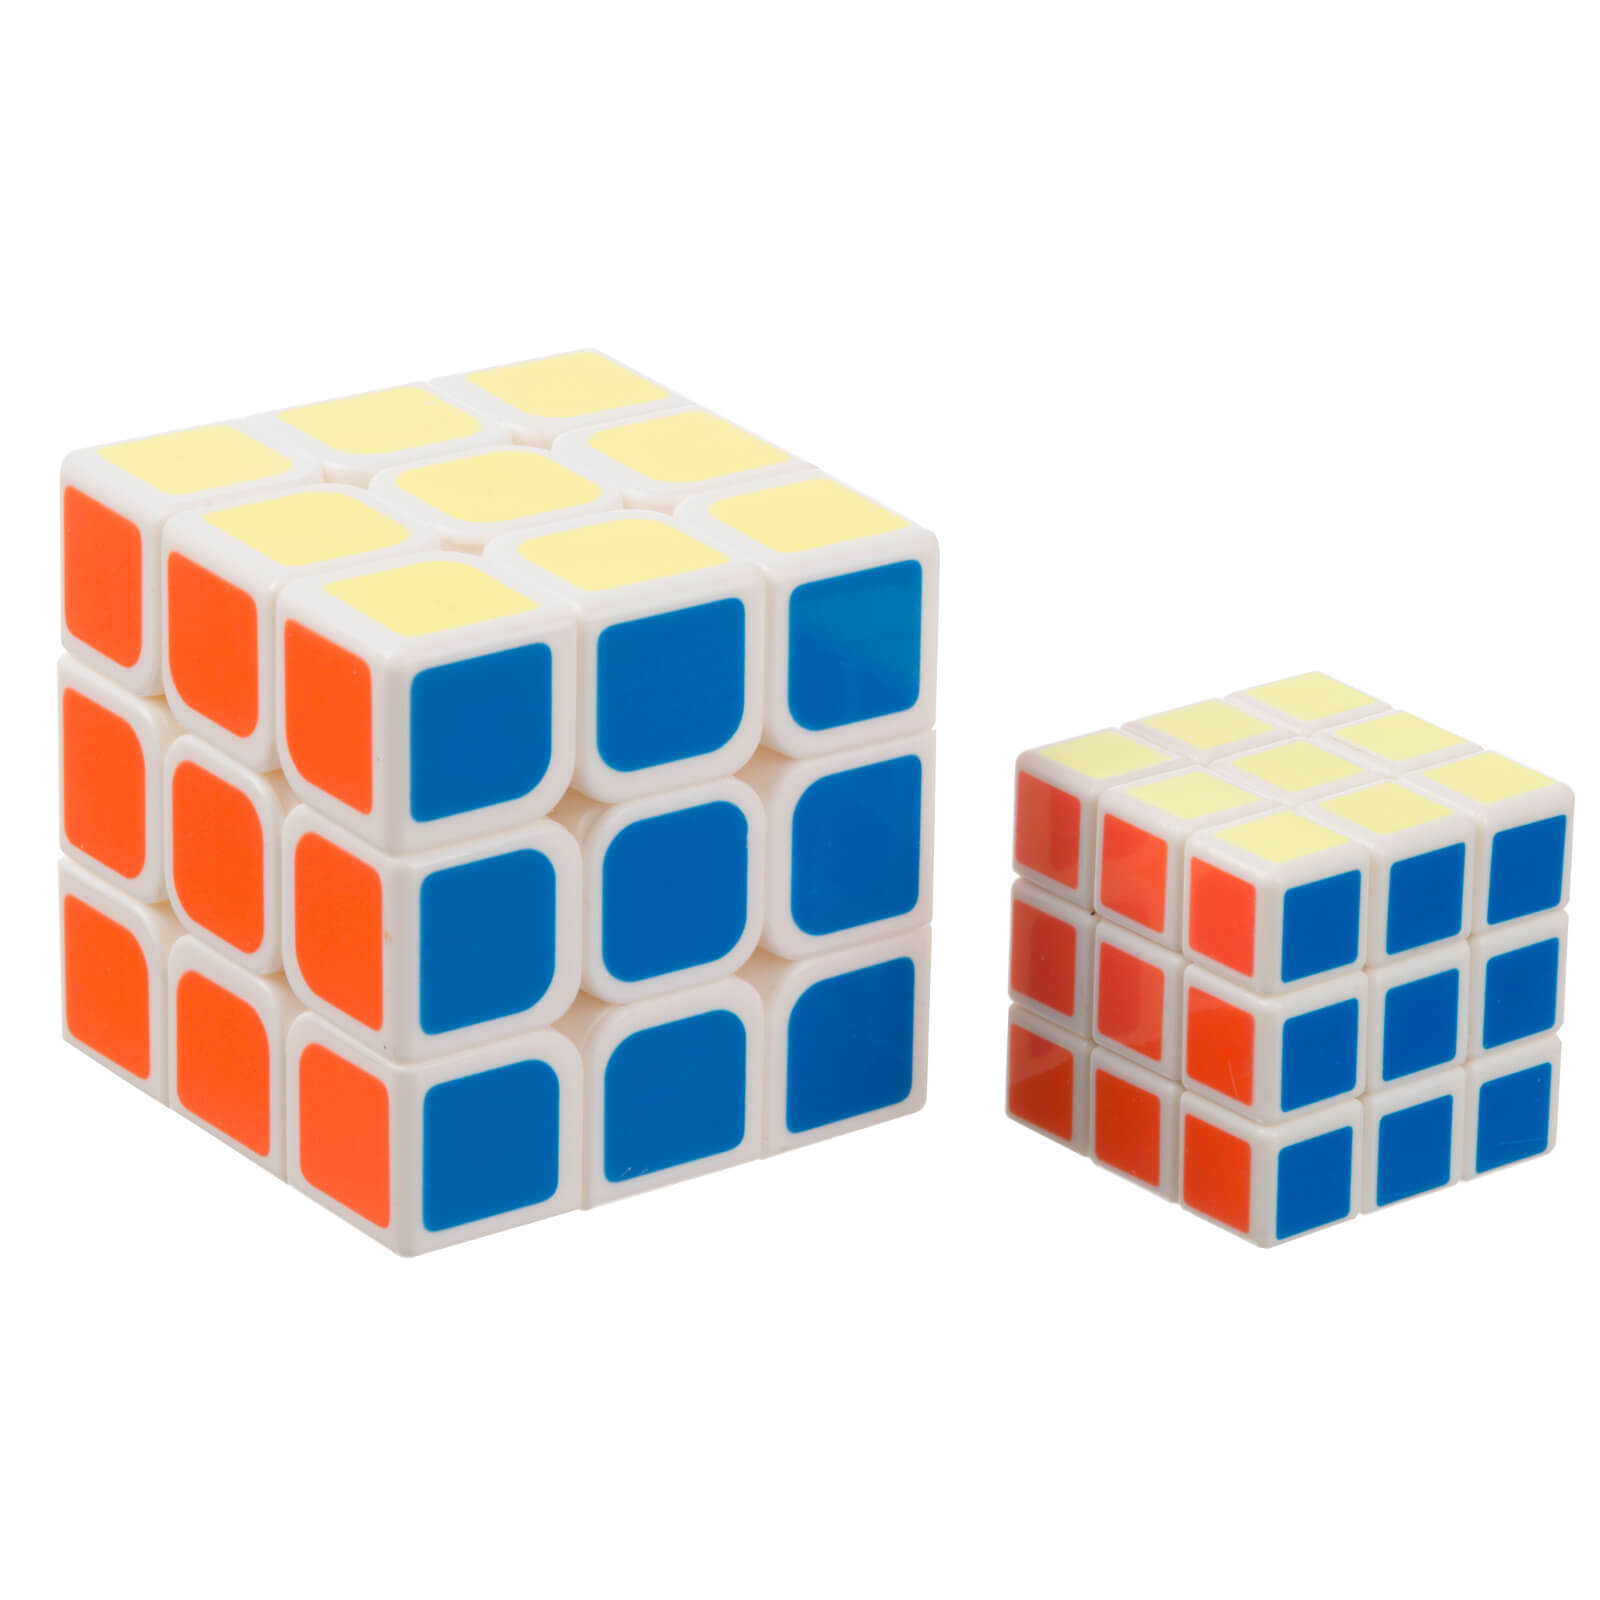 Speed Cube Puzzle Game